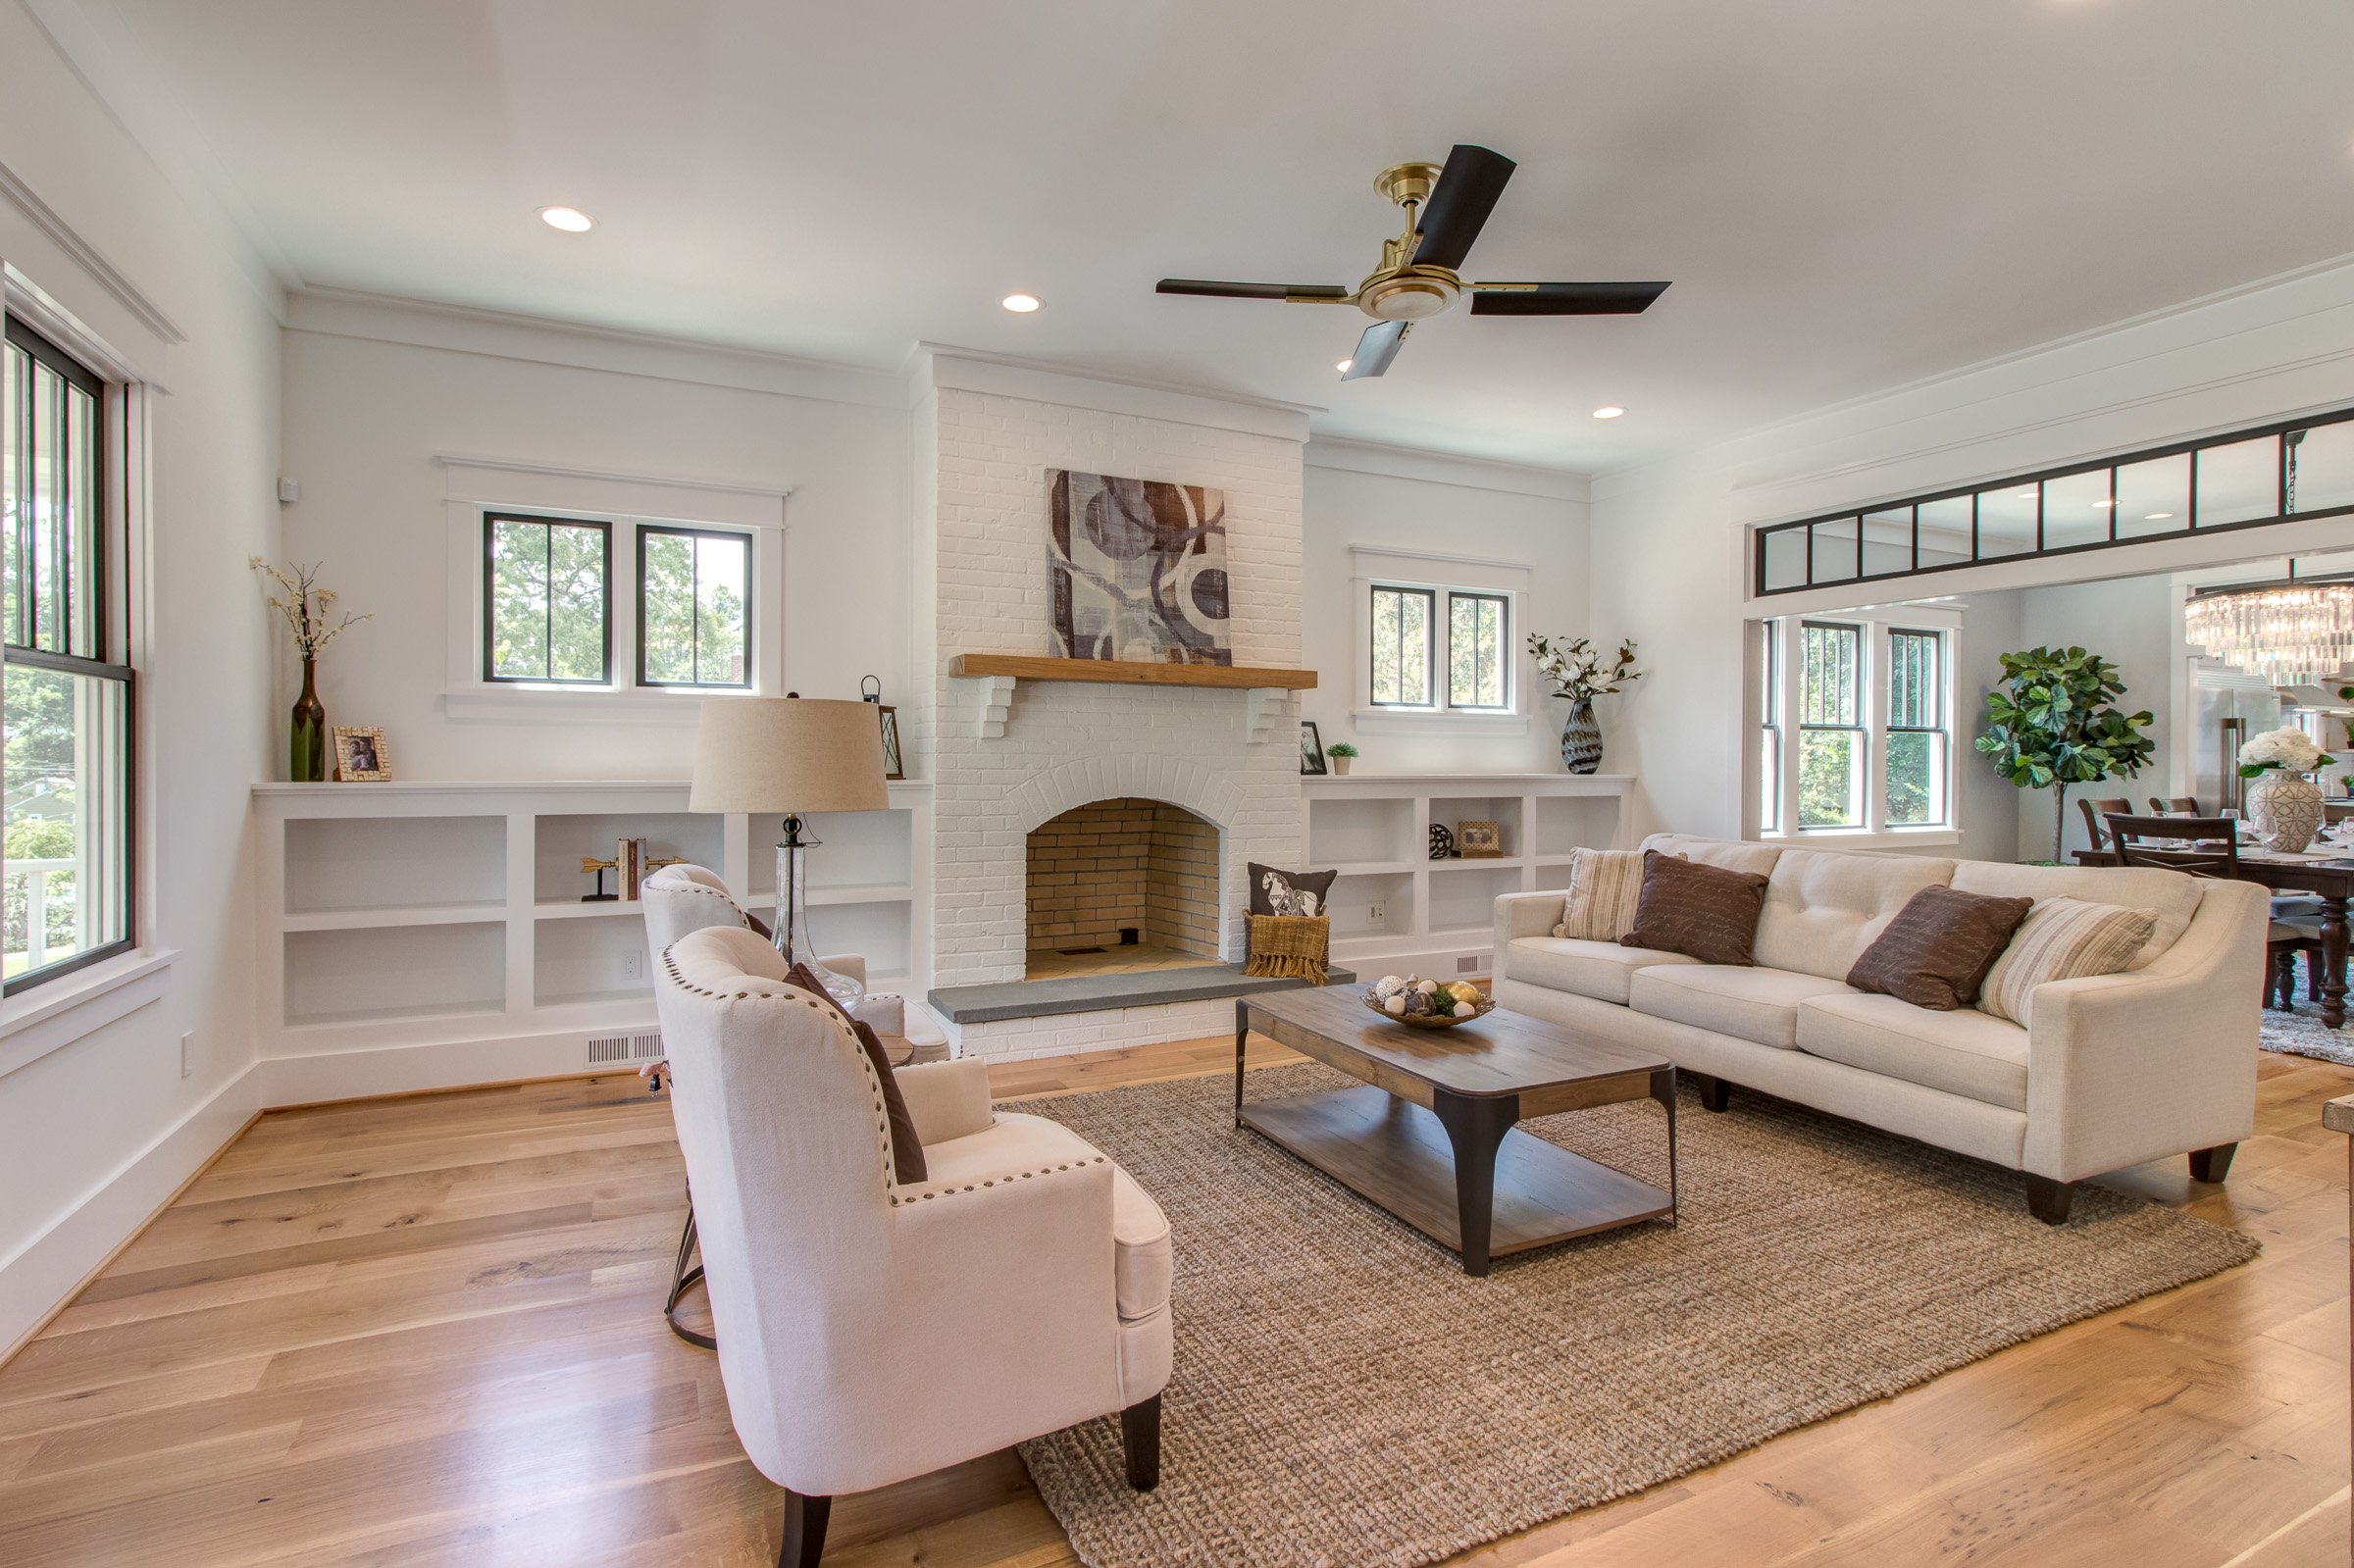 Spacious living room with cream walls, warm wood floors and black window trim.  Furnished with natural sisal rug and linen couches.